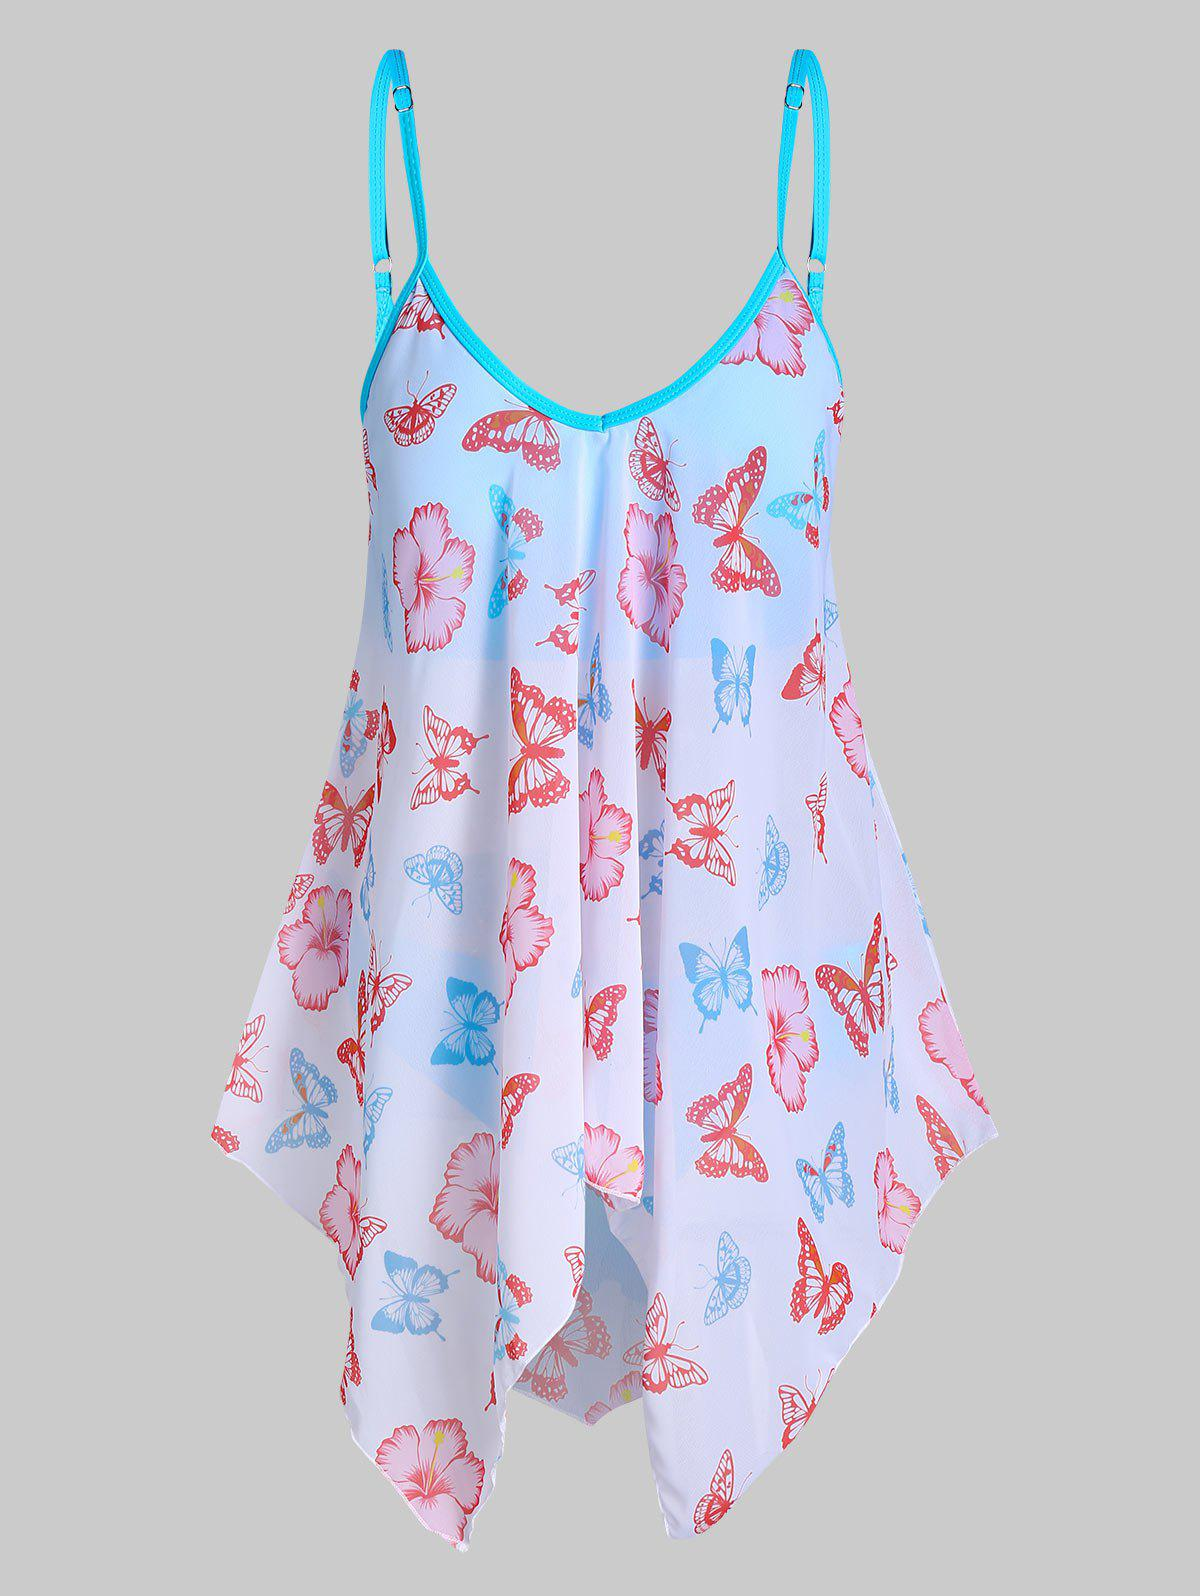 Butterfly and Flower Print Padded Tankini Swimsuit - DAY SKY BLUE XL